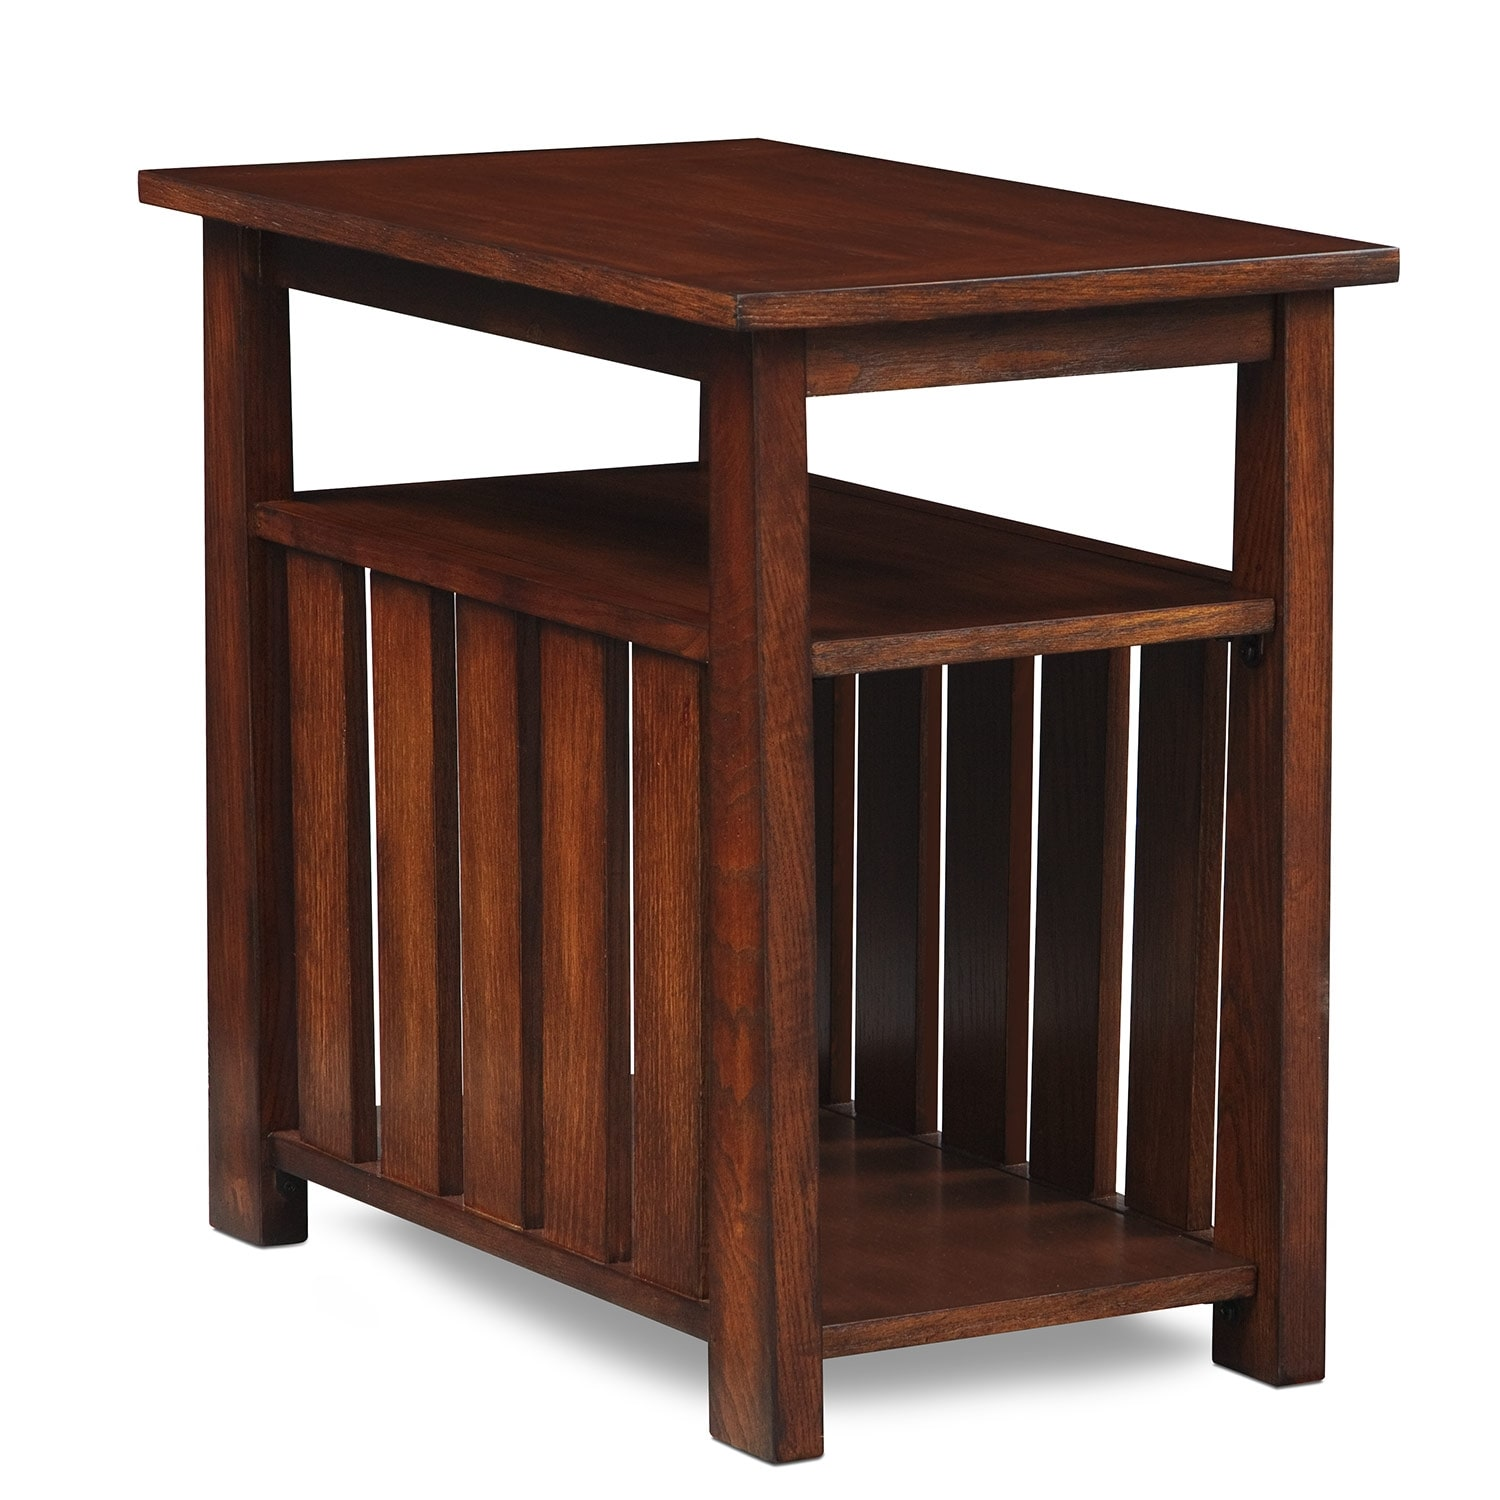 Tribute sofa table cherry value city furniture for Sofa table cherry